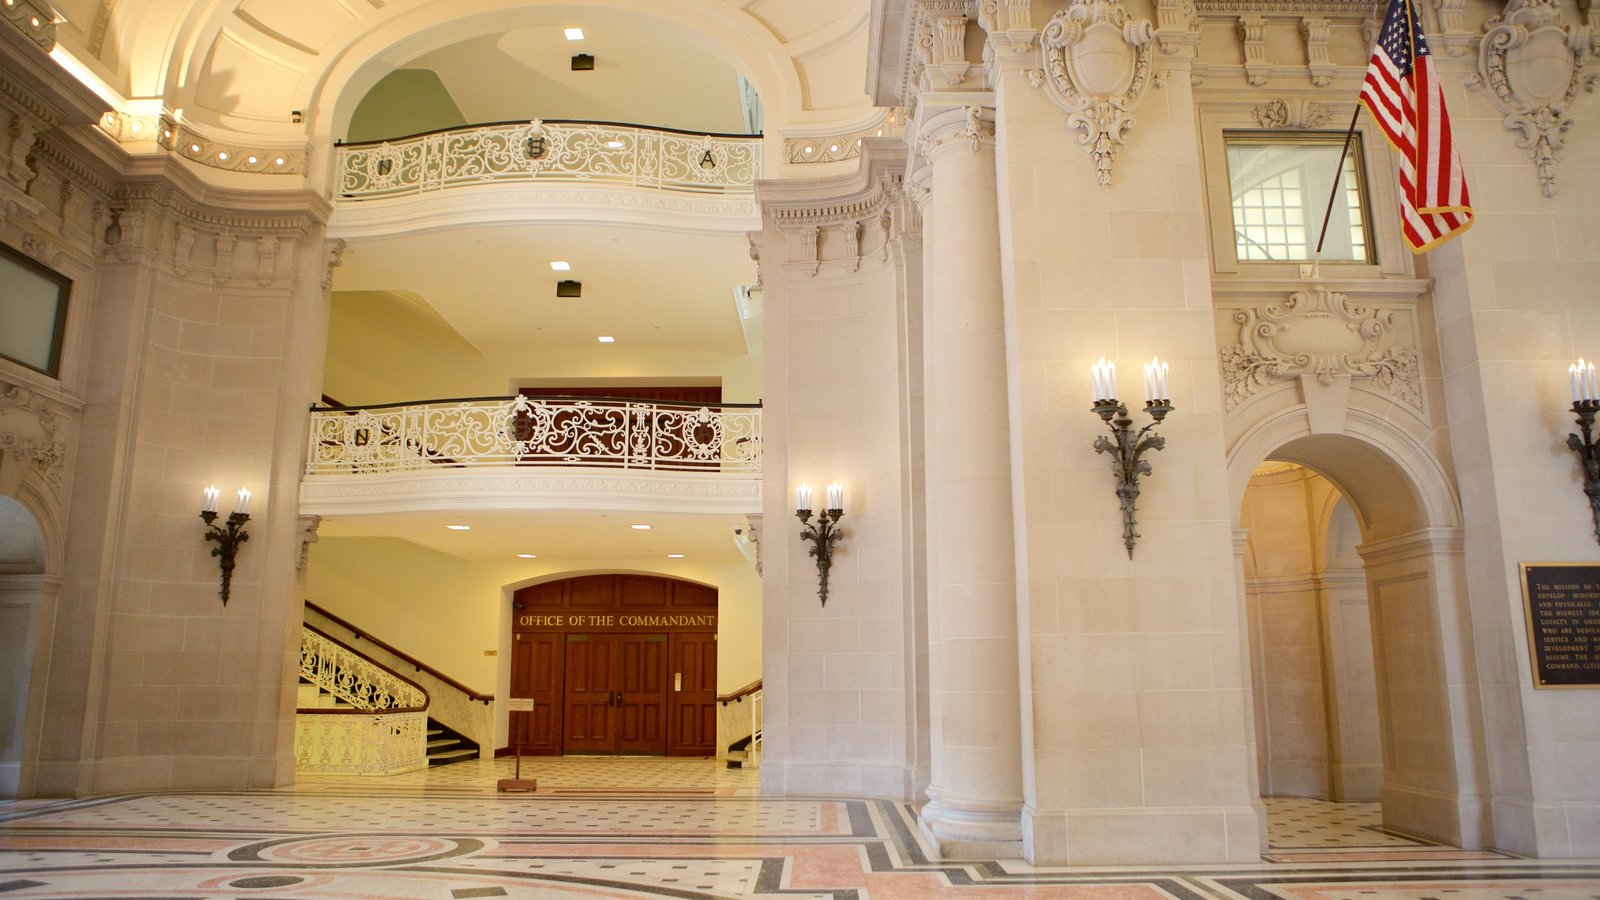 U.S. Naval Academy showing interior views, heritage architecture and military items